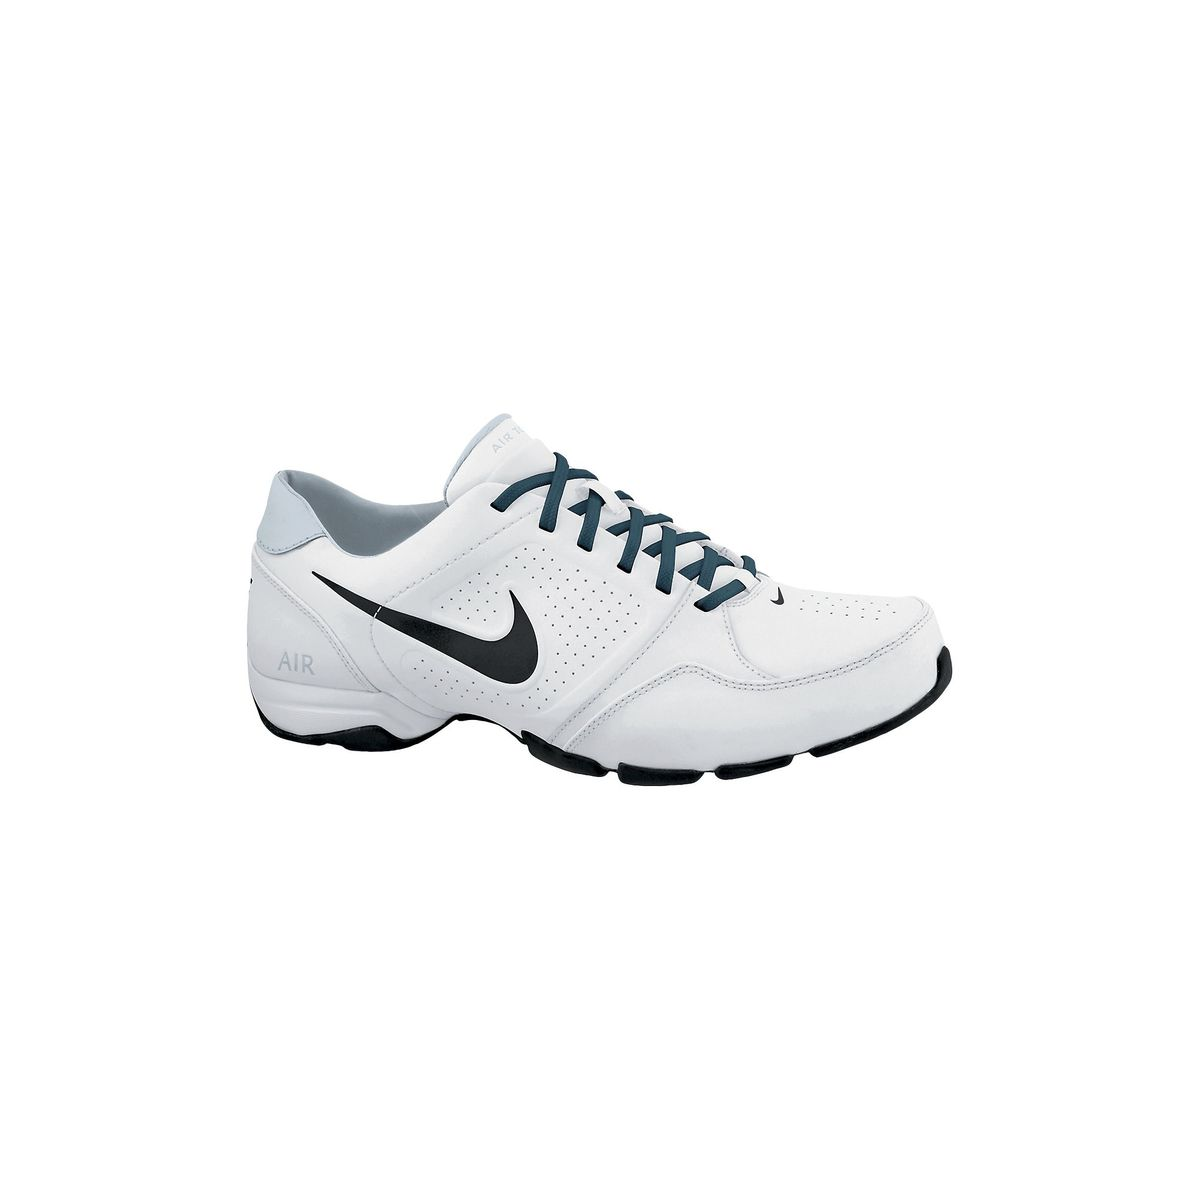 Men's Nike Air Toukol III Cross Training Shoe ...